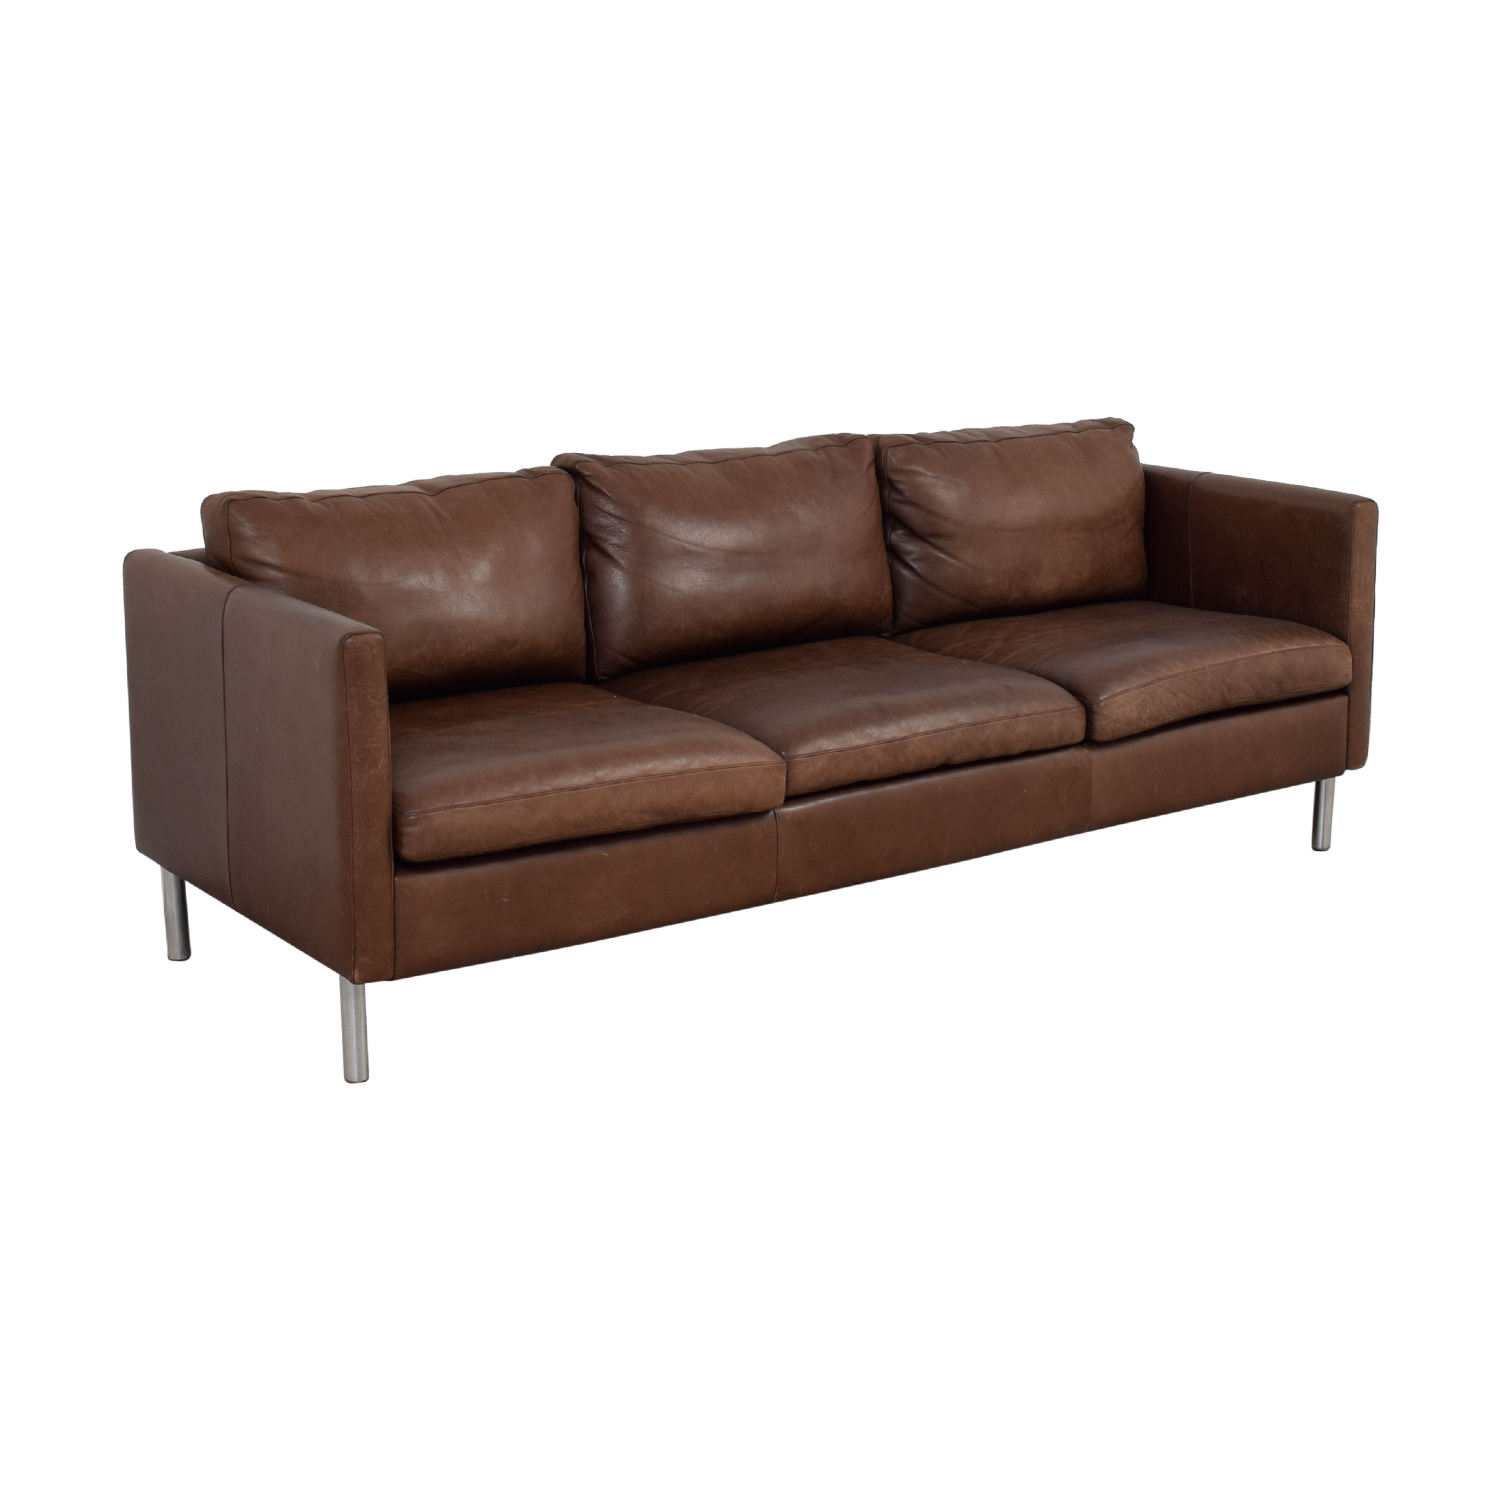 Room & Board Room & Board Jackson Brown Leather Three-Cushion Sofa Classic Sofas